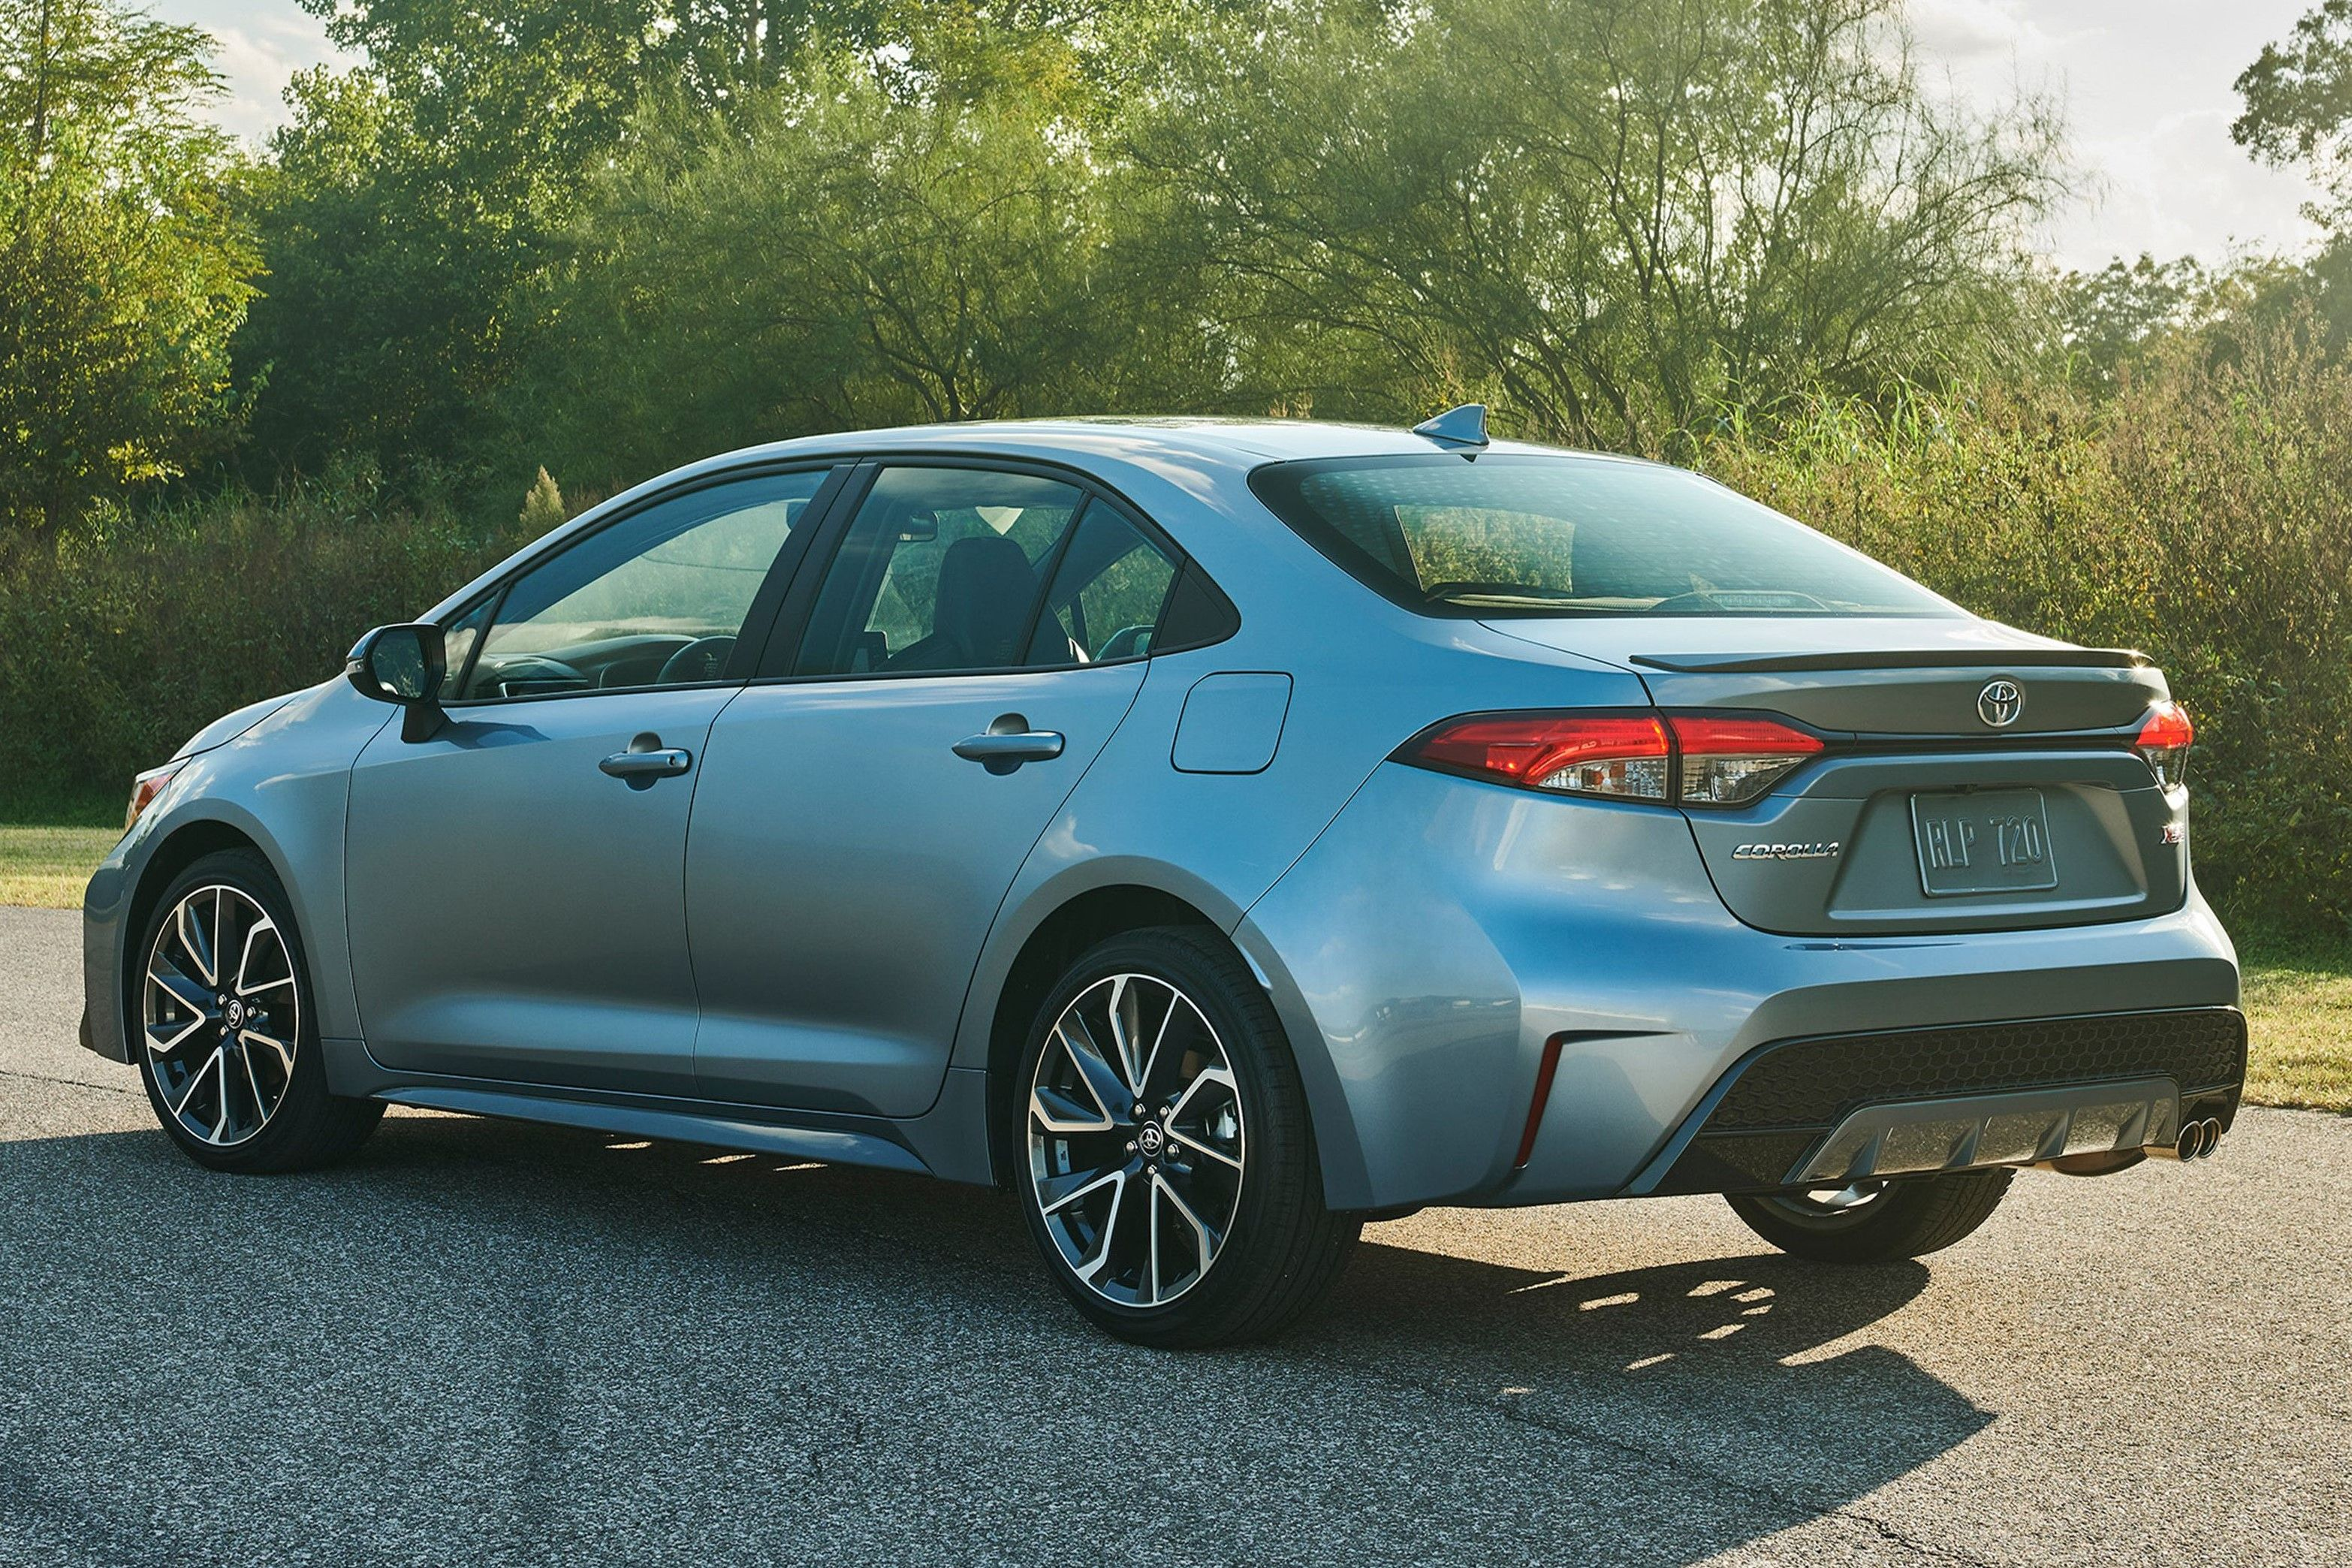 2021 Toyota Corolla Sedan Rear and side View